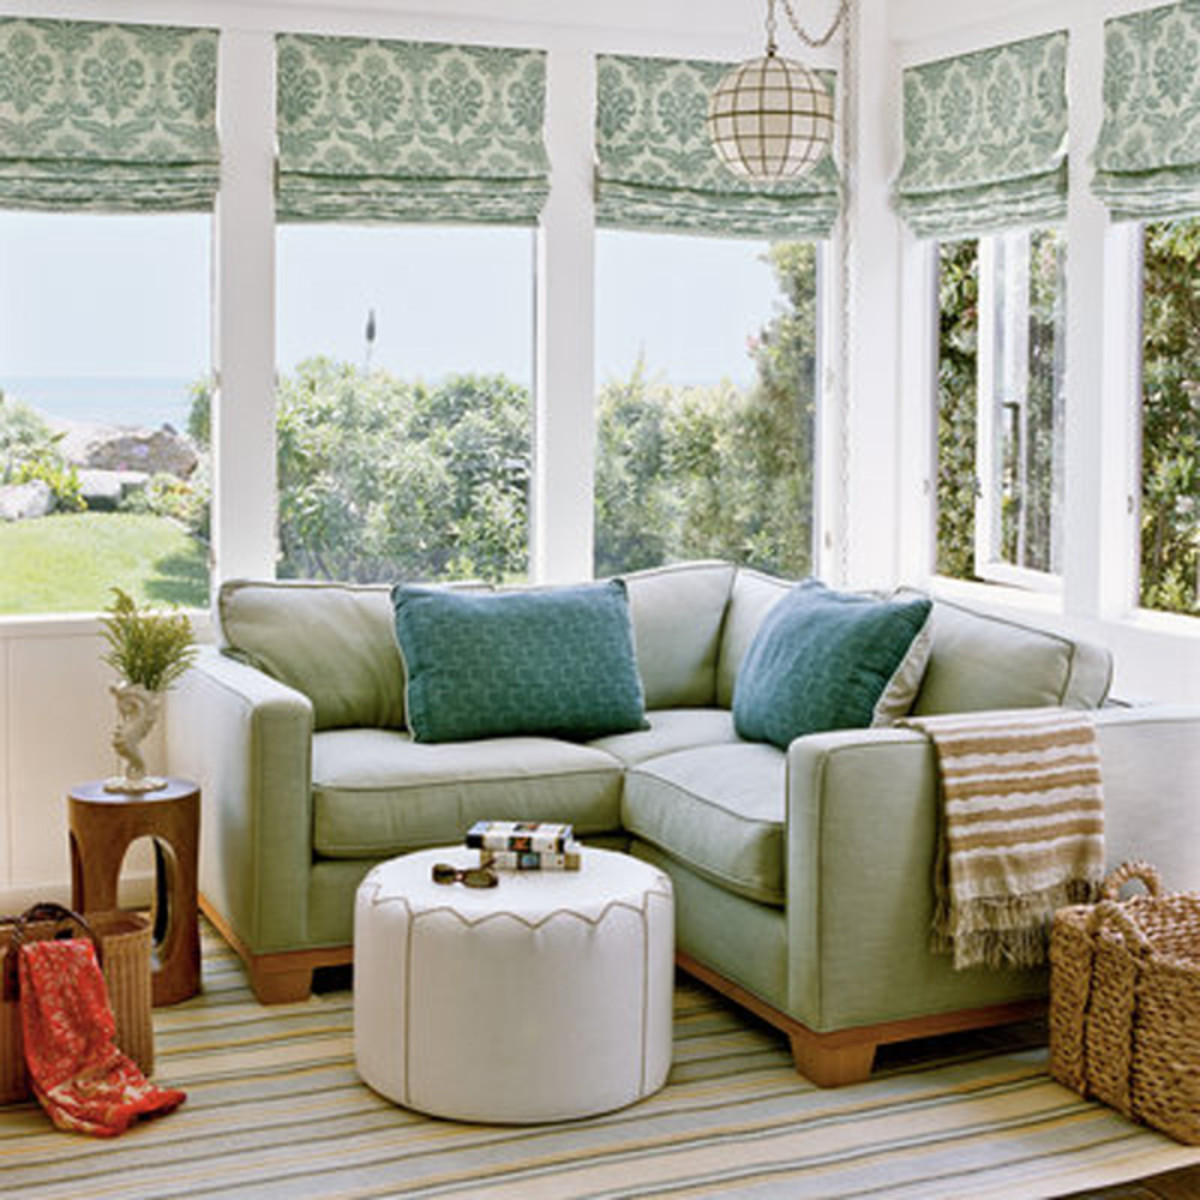 Light and airy fabrics and furnishings give a cottage a beach feel.